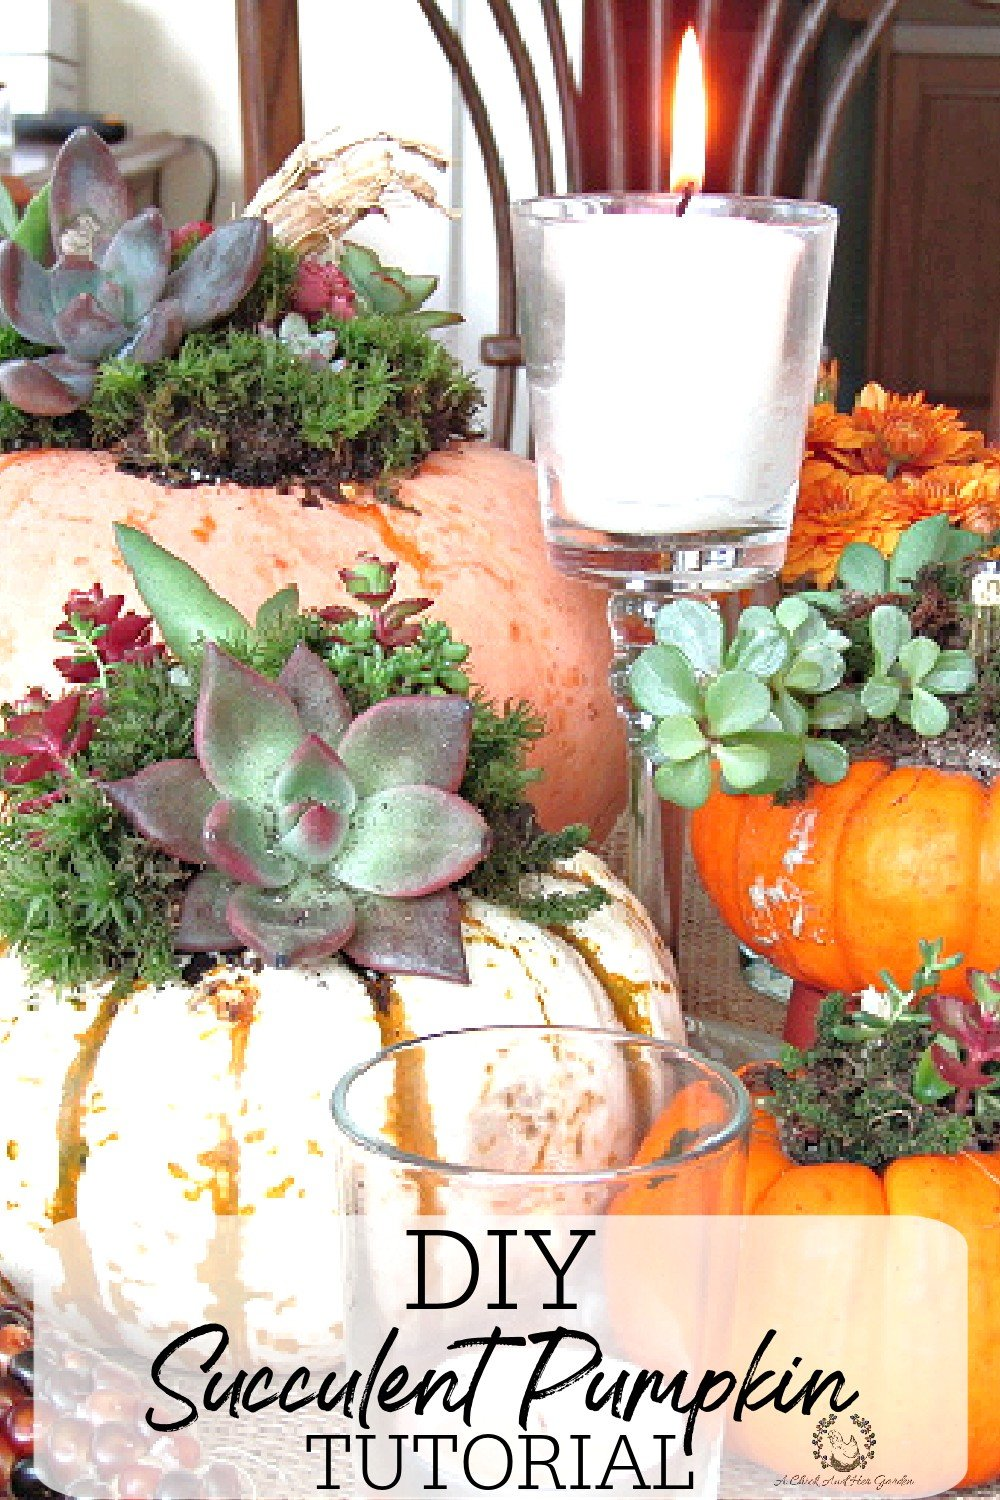 These succulents pumpkins turned out gorgeous as our centerpiece for the fall holidays! I could end up going a little overboard and popping them all over the house this season! #succulents #succulentdesign #craftingwithsucculents #succulentdecor #designingwithsucculents #DIY #achickandhergarden